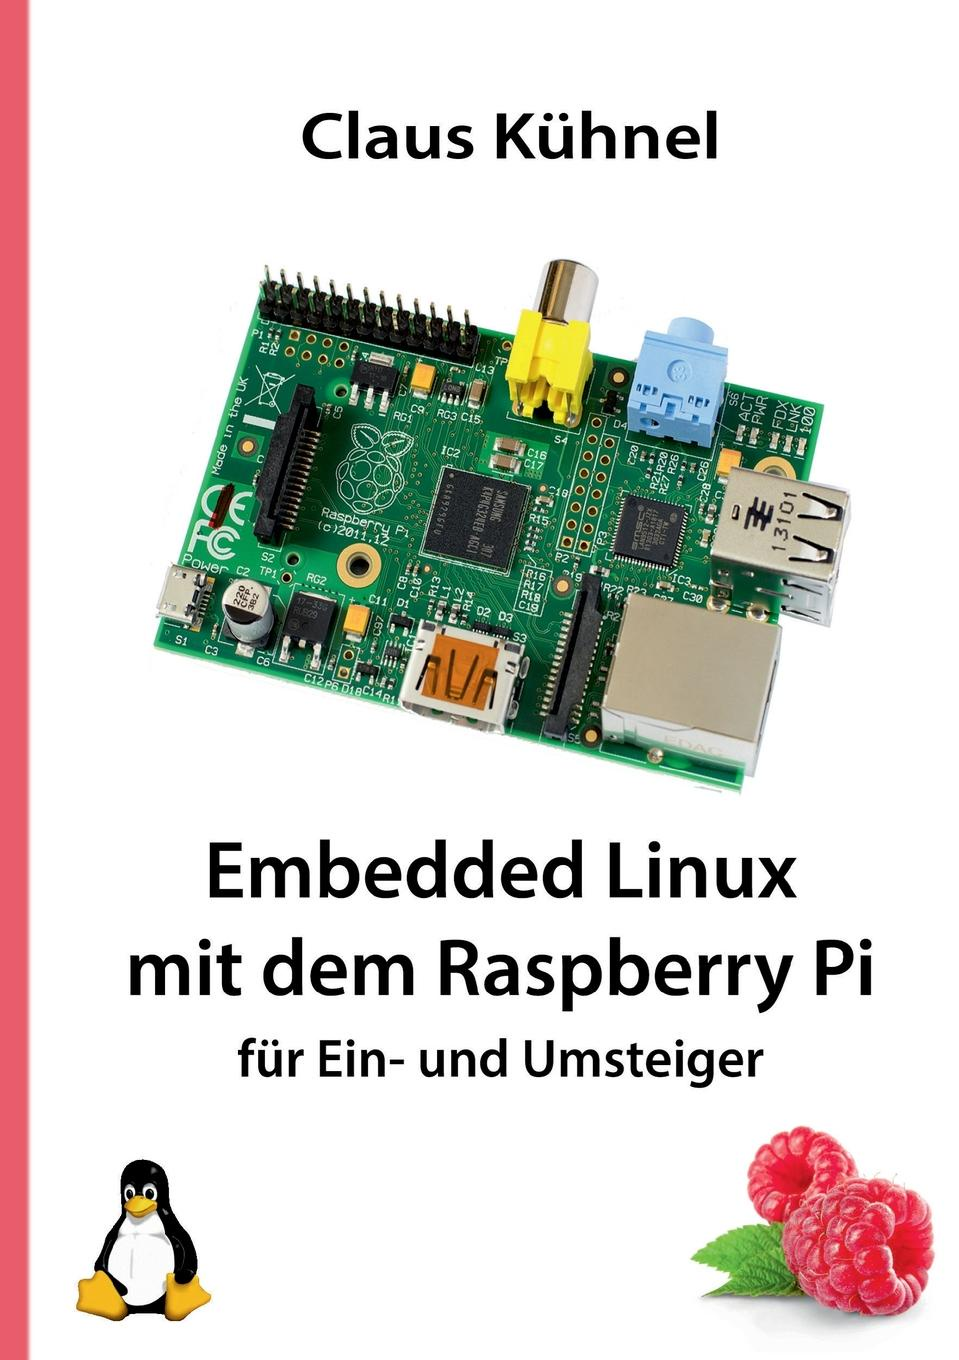 Claus Kuhnel Embedded Linux Mit Dem Raspberry Pi цена